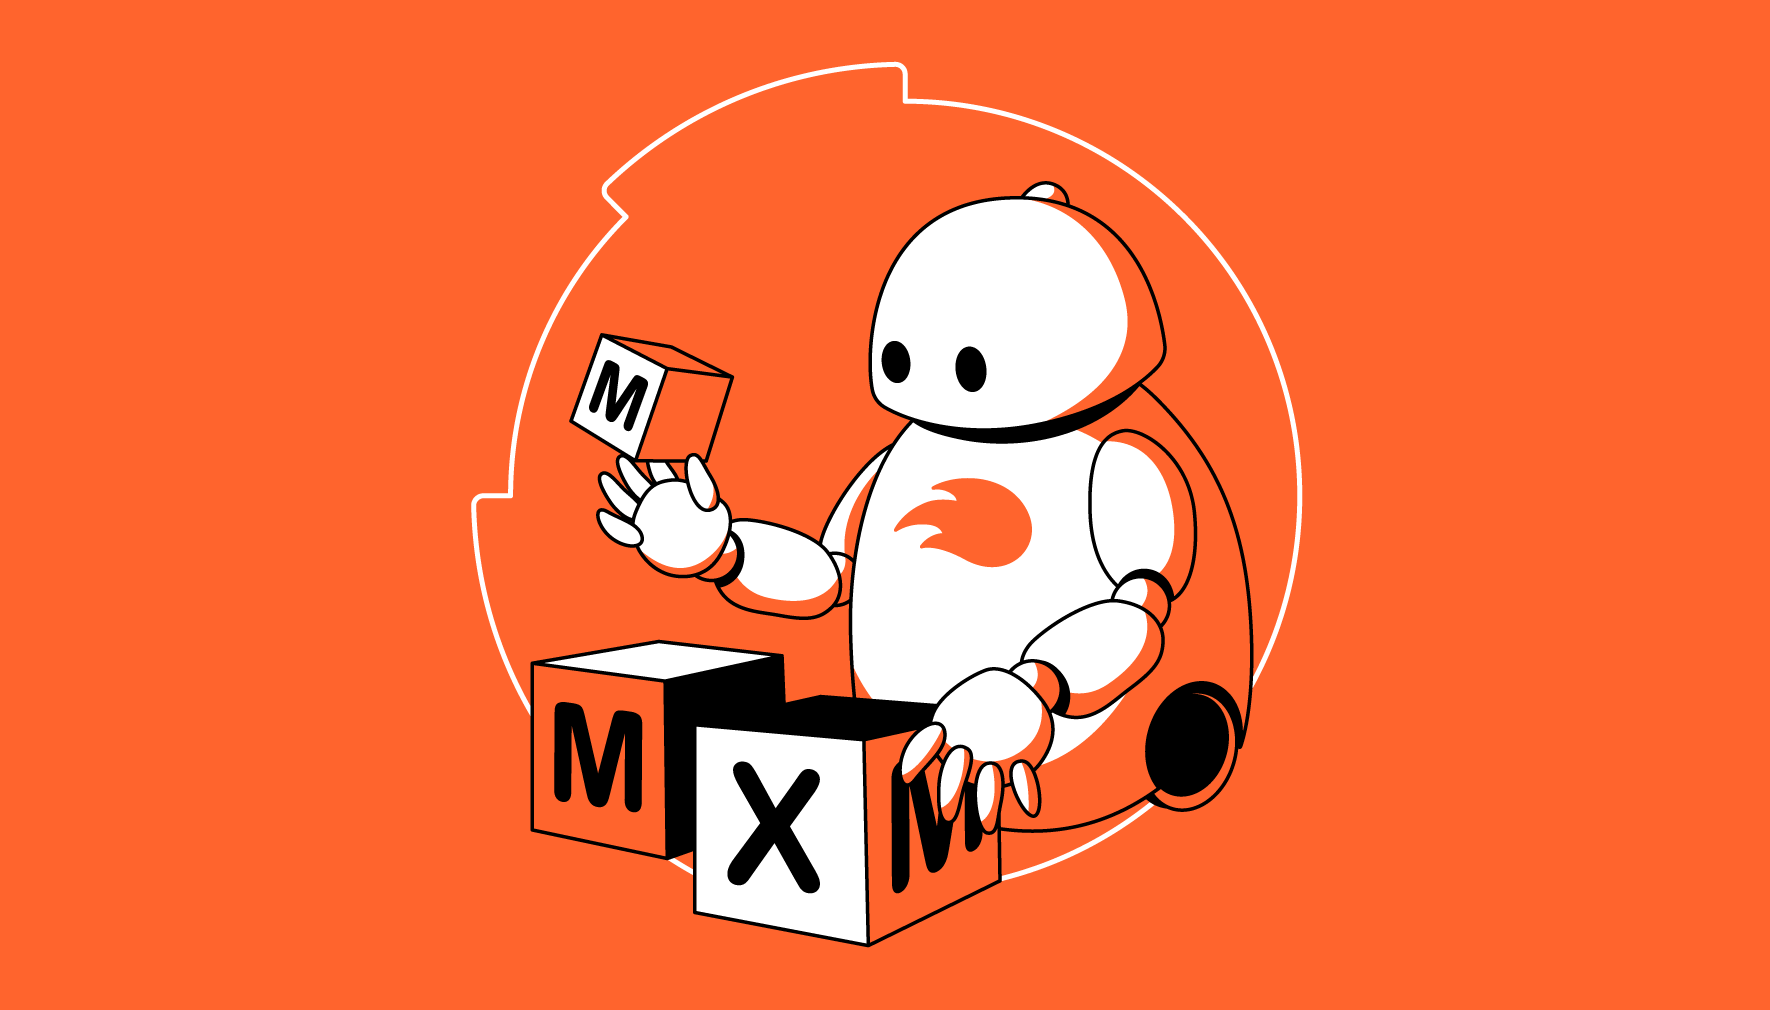 Robots Meta Tag and X-Robots-Tag Explained